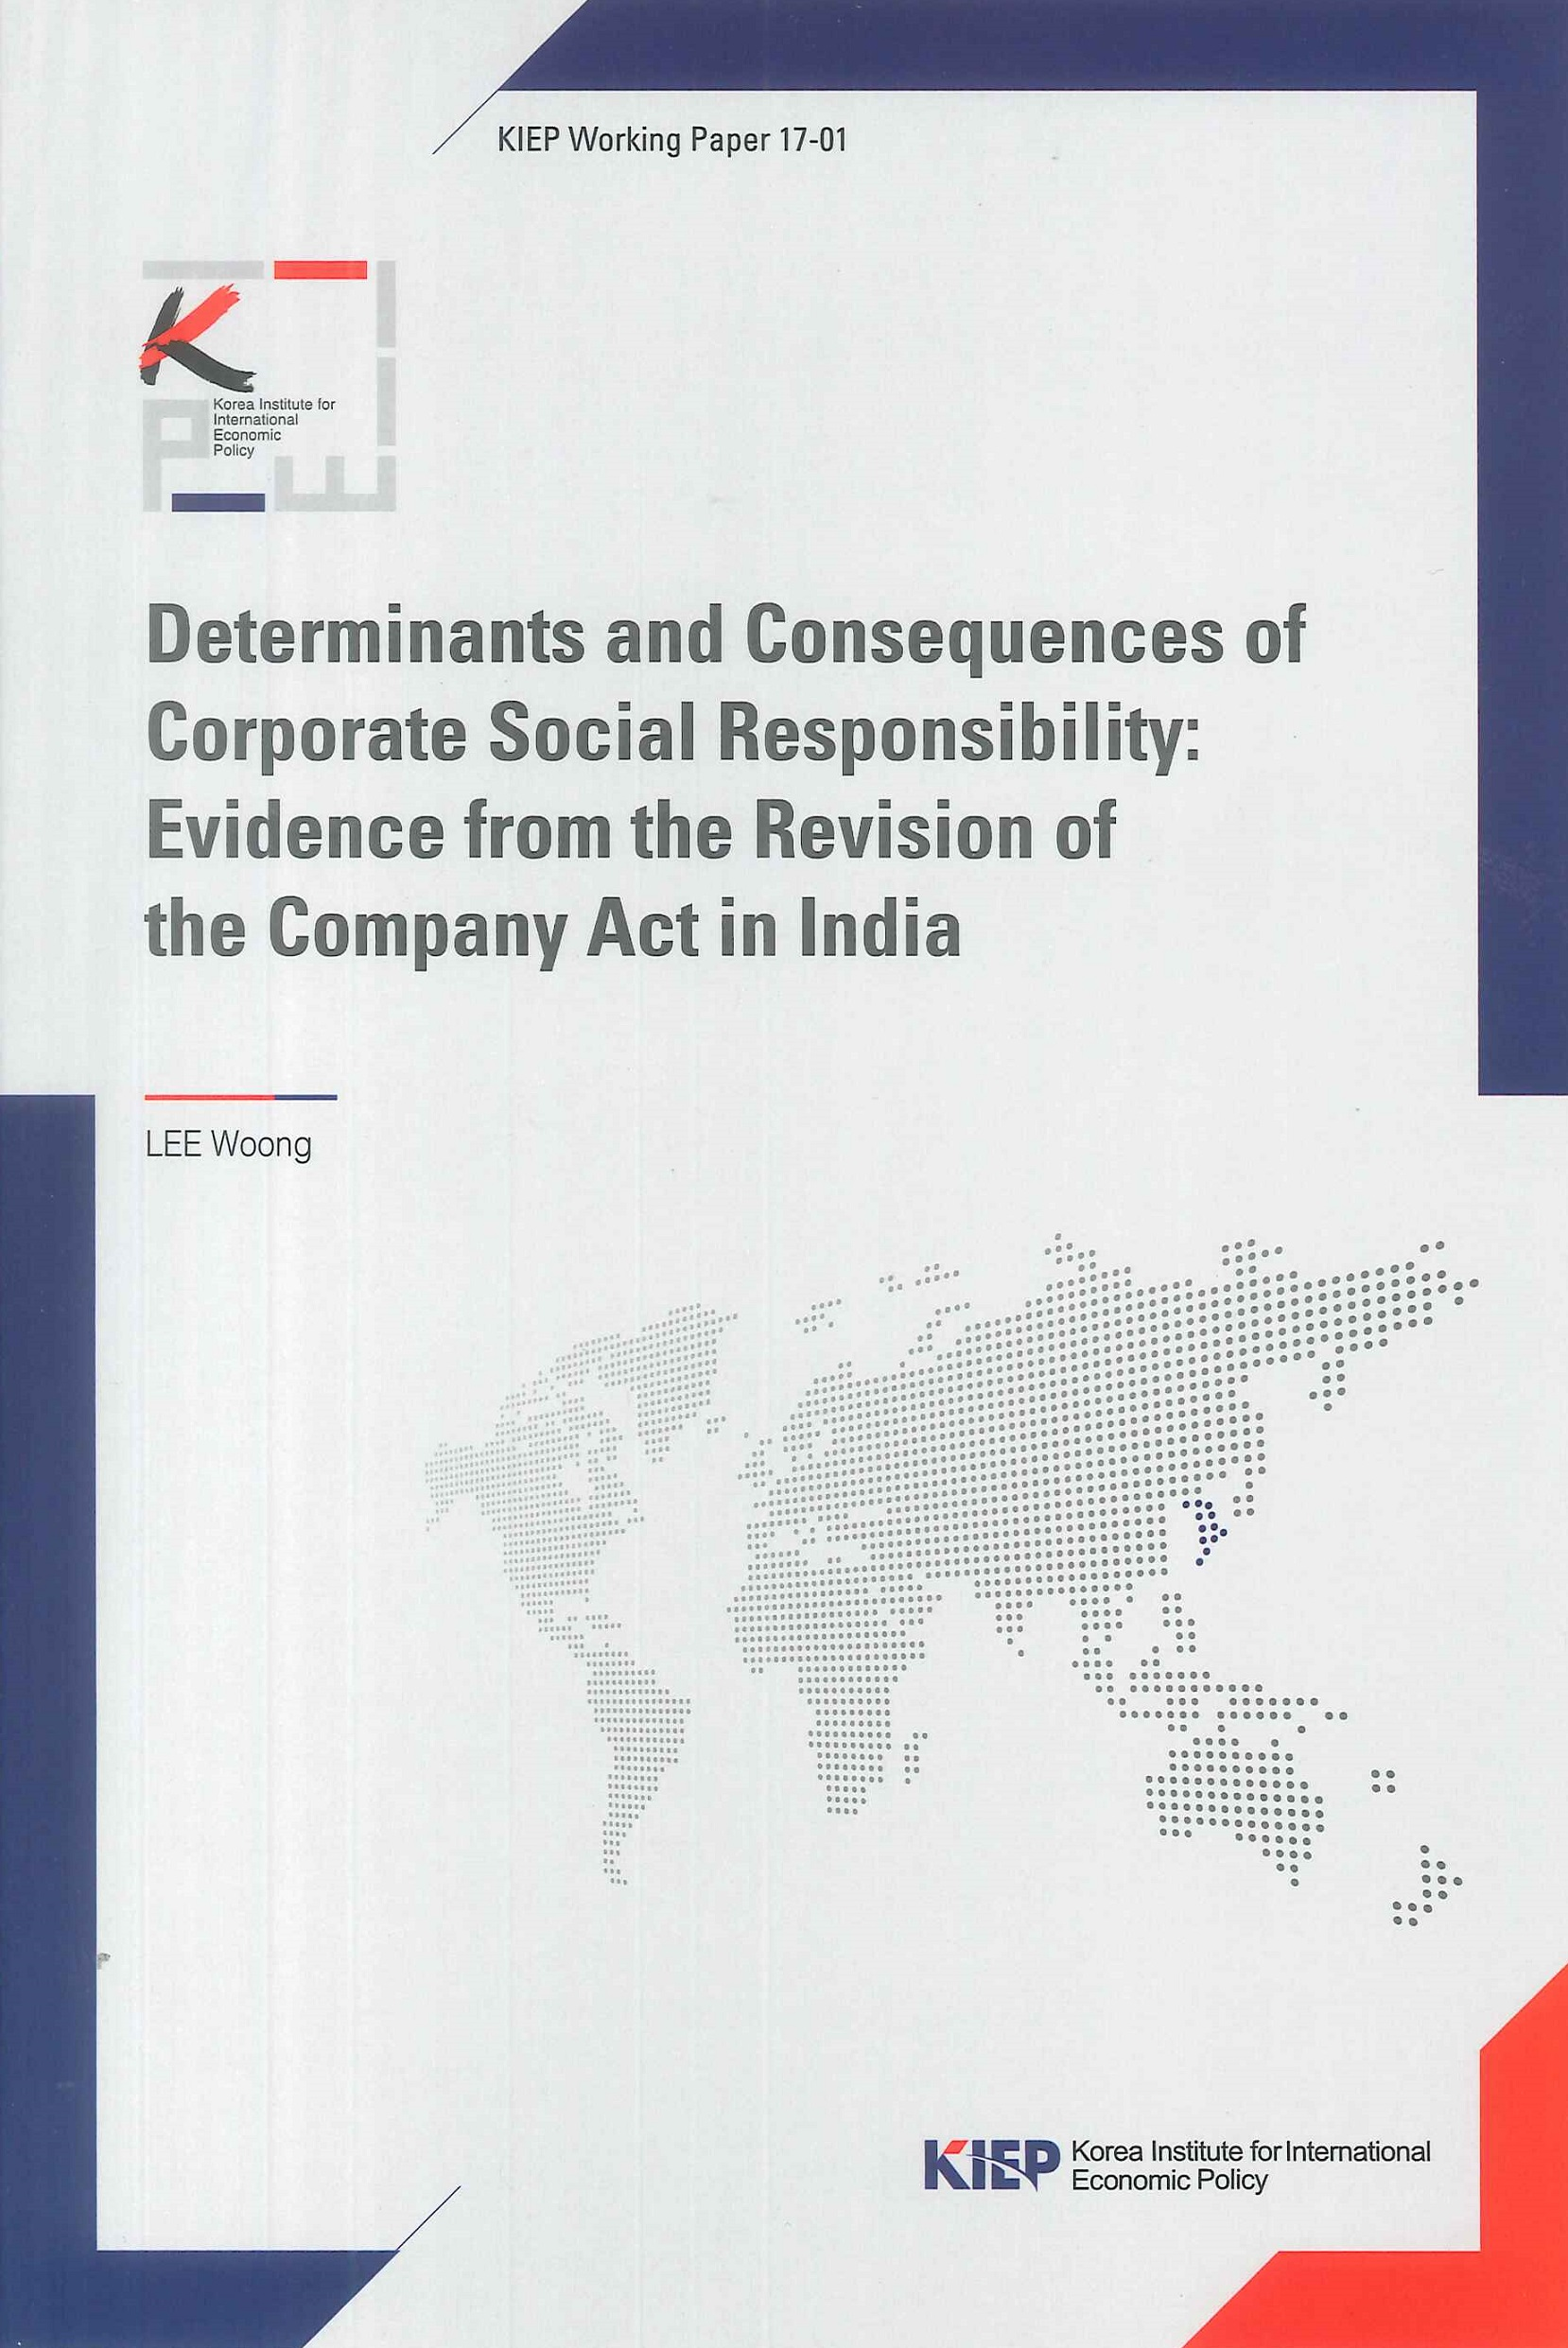 Determinants and consequences of corporate social responsibility:evidence from the revision of the company act in India